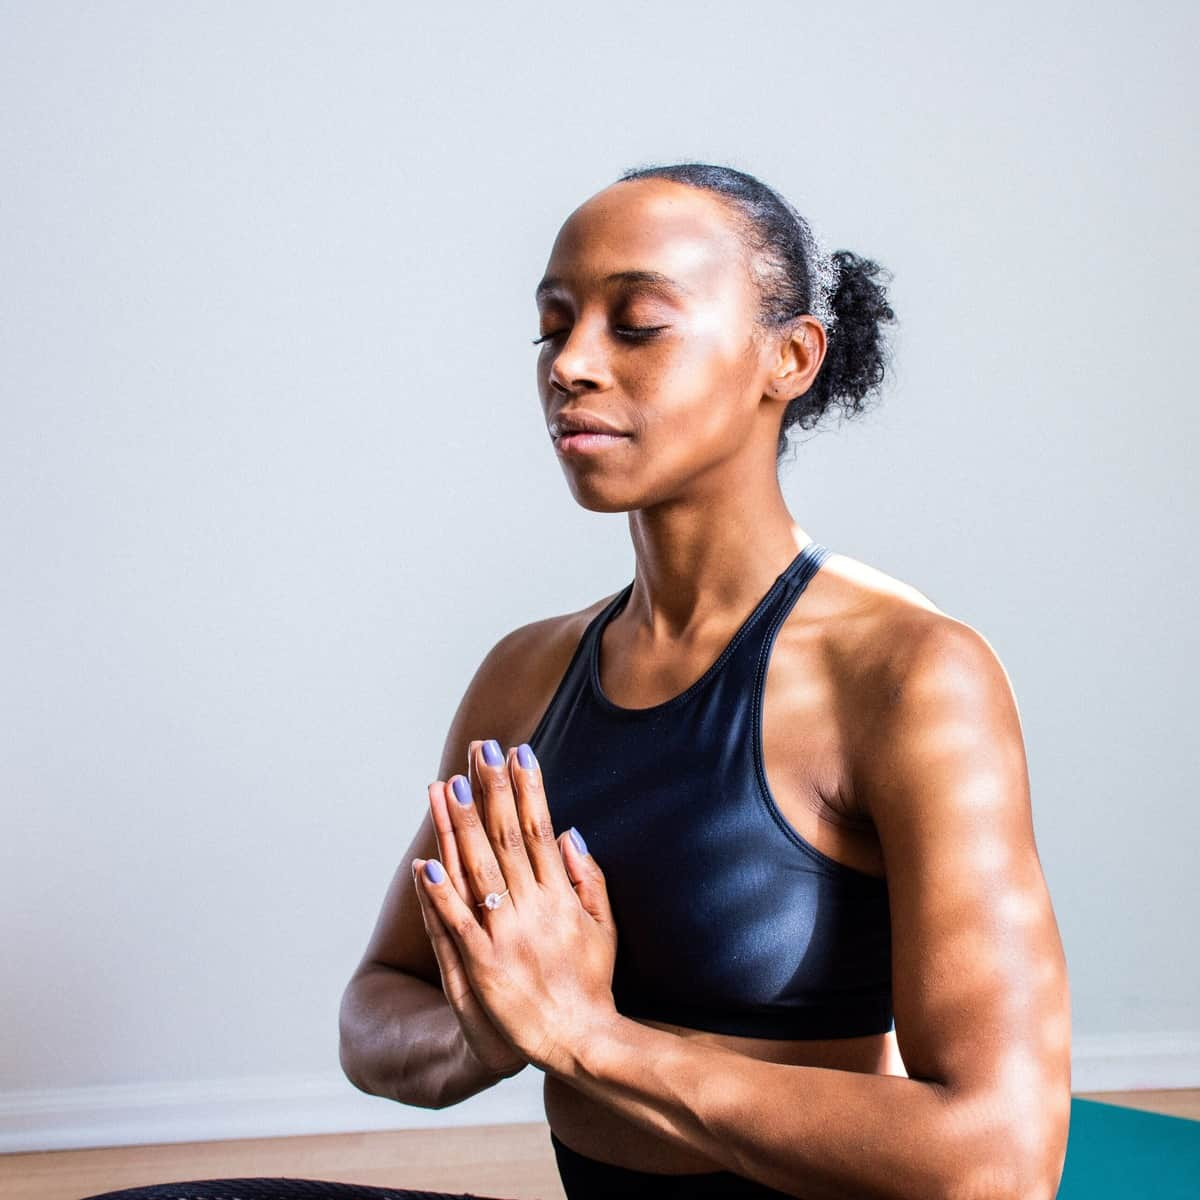 A woman meditating to manage cortisol levels.